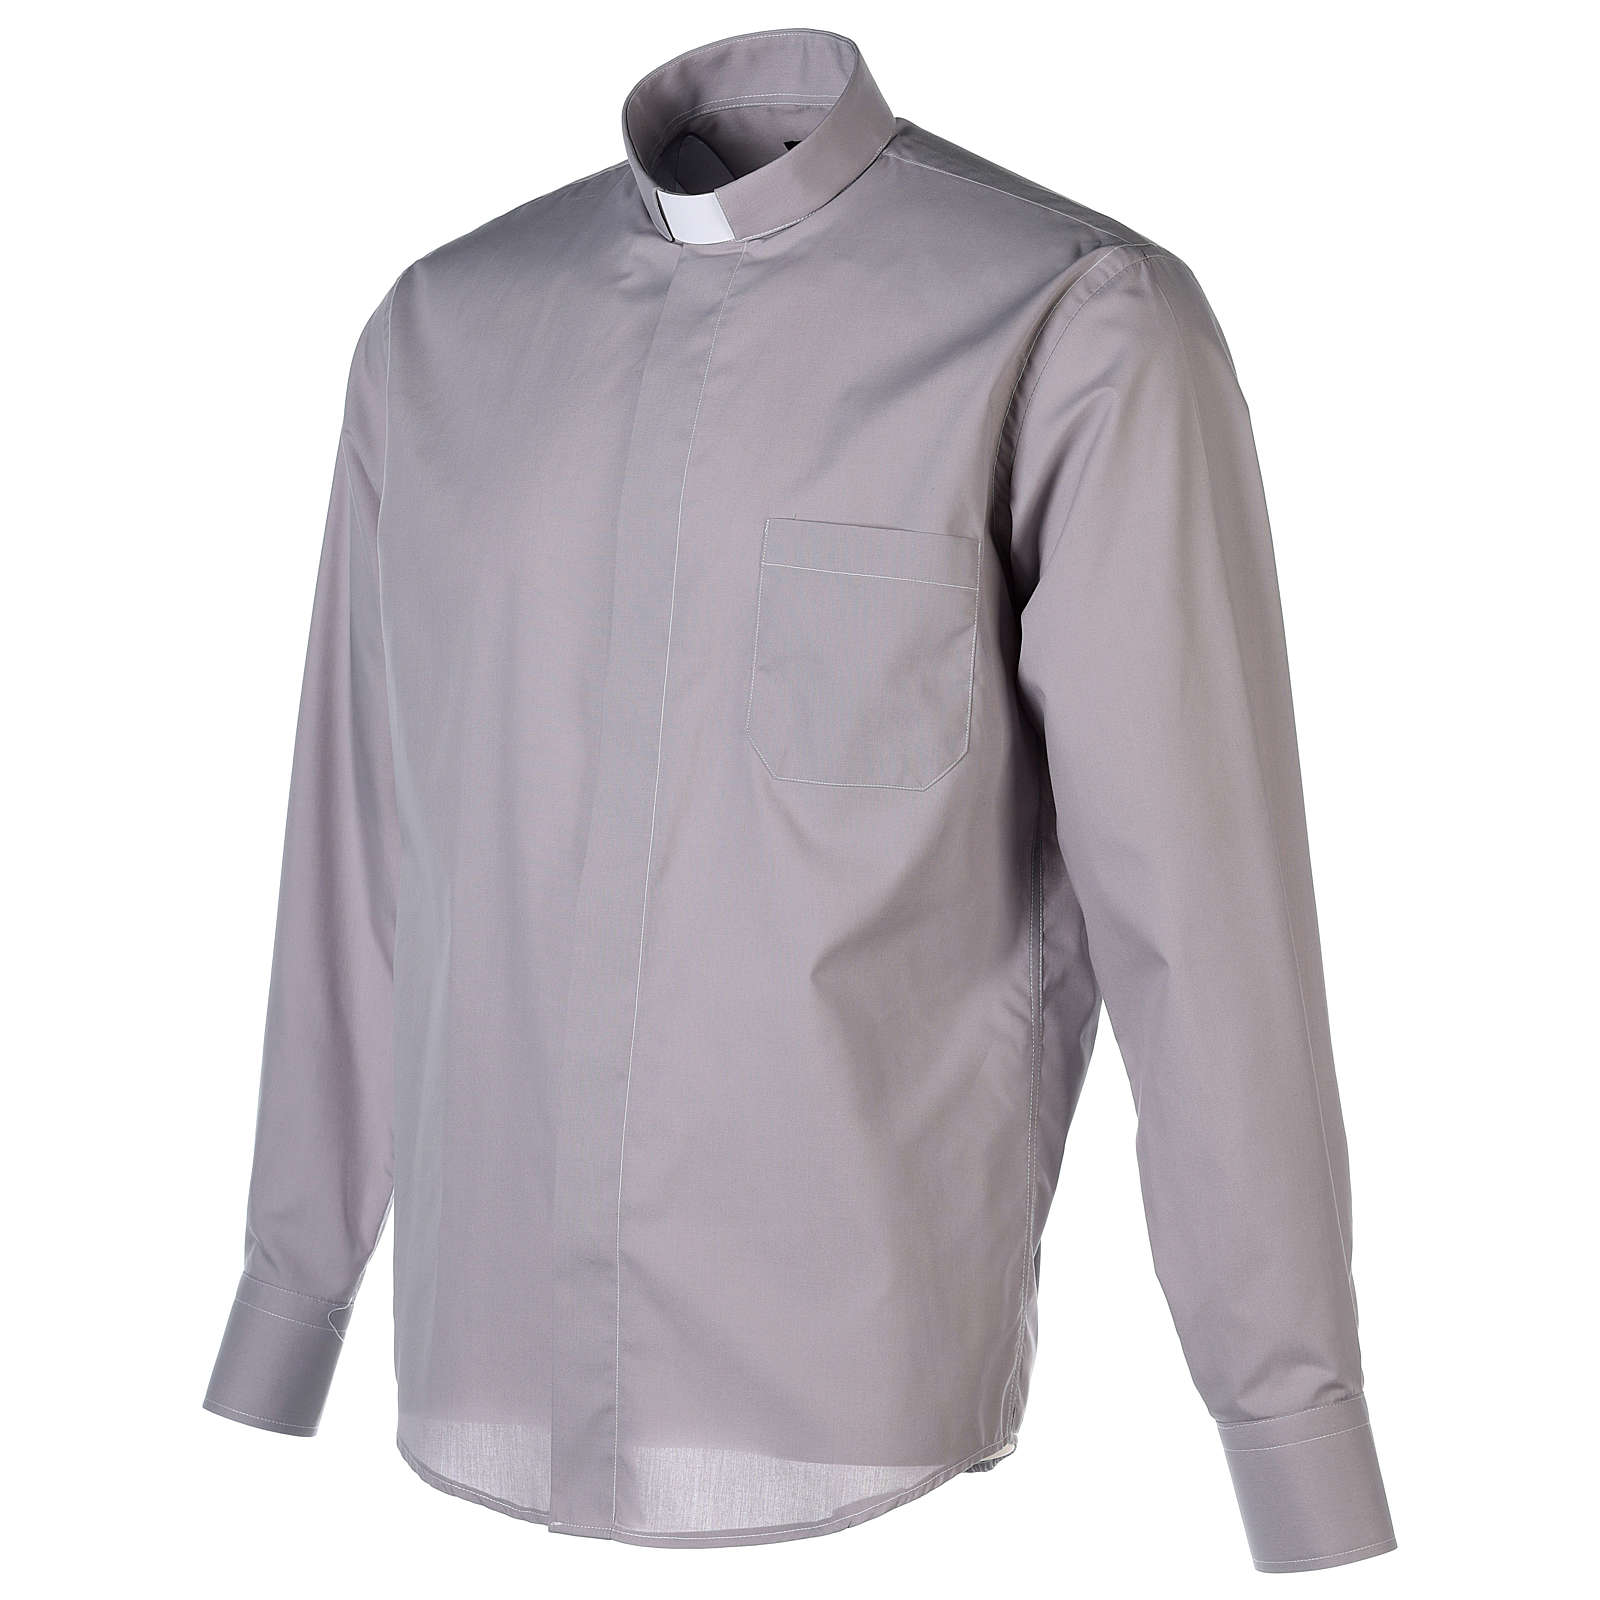 Camisa Clergy Manga Larga Color Uniforme Mixto Algodón Gris claro 4